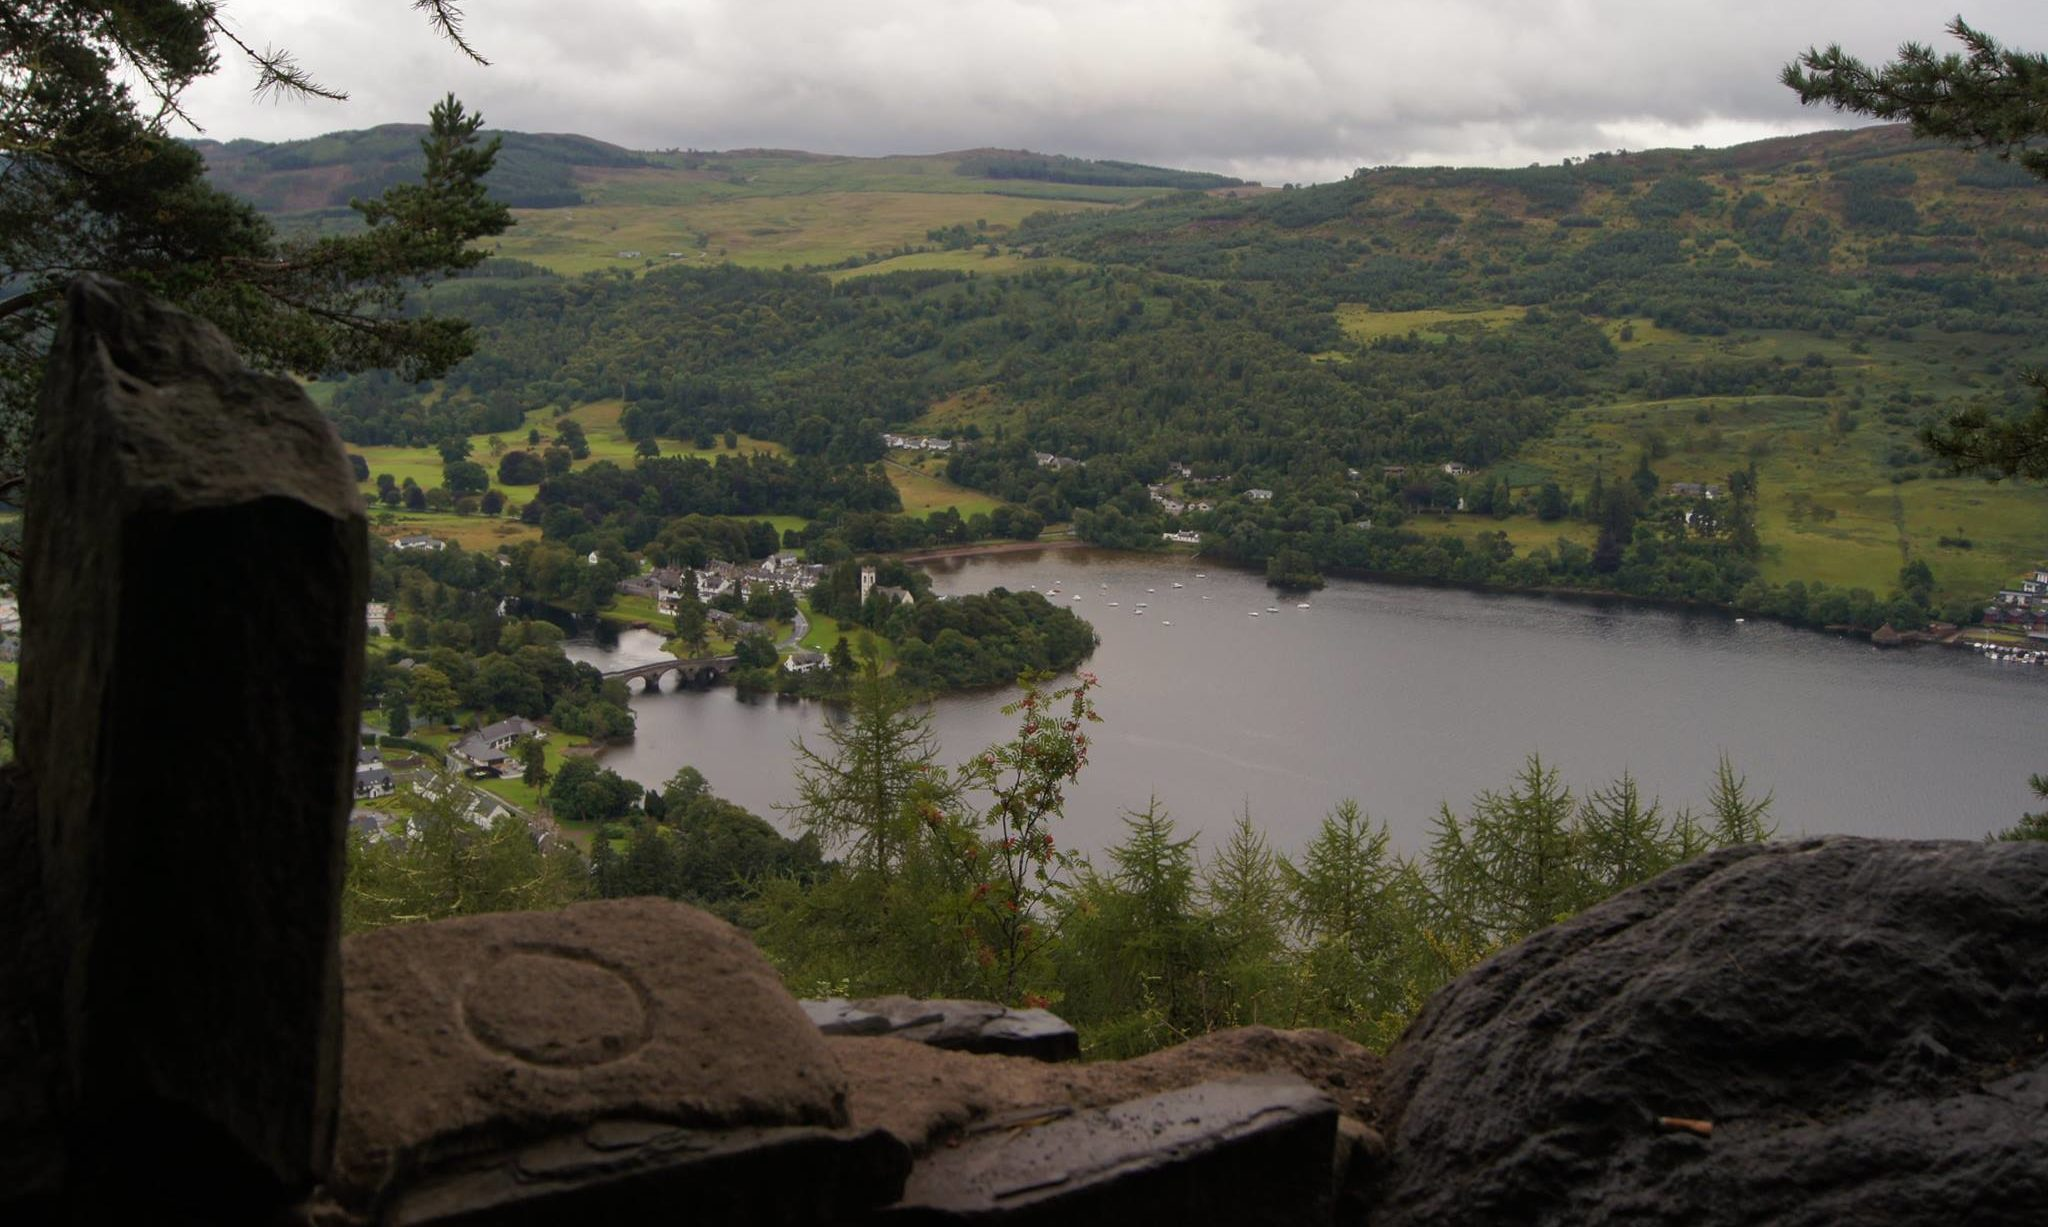 The view from Drummond Hill, Loch Tay.